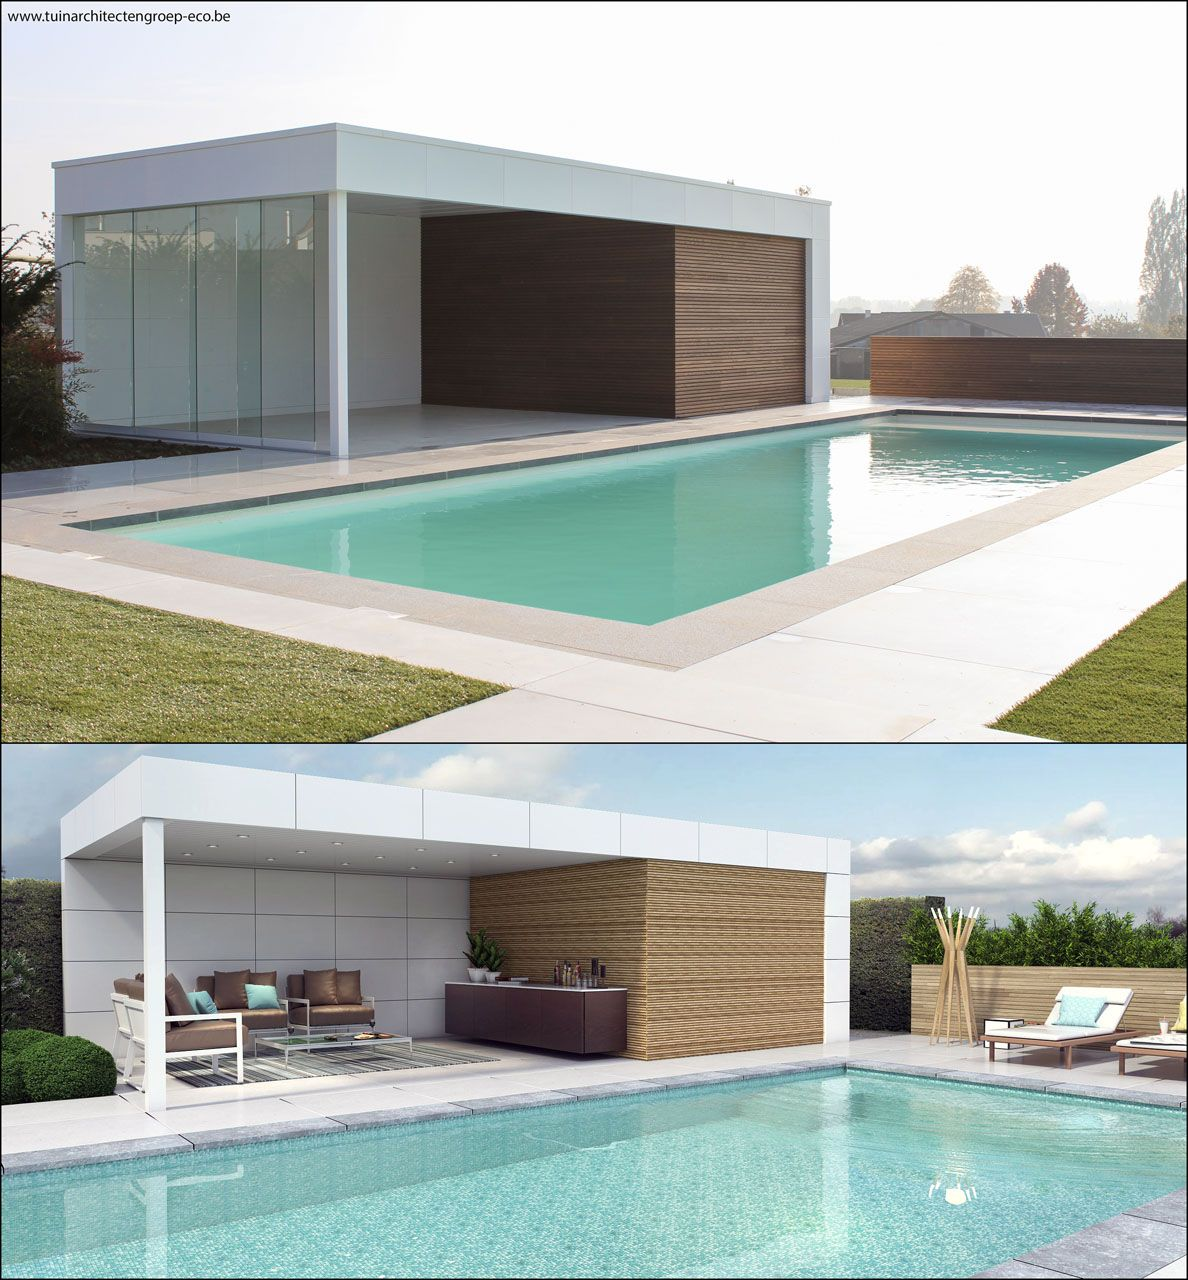 Home Plans With Pool House: Alu / Wood Design Poolhouse